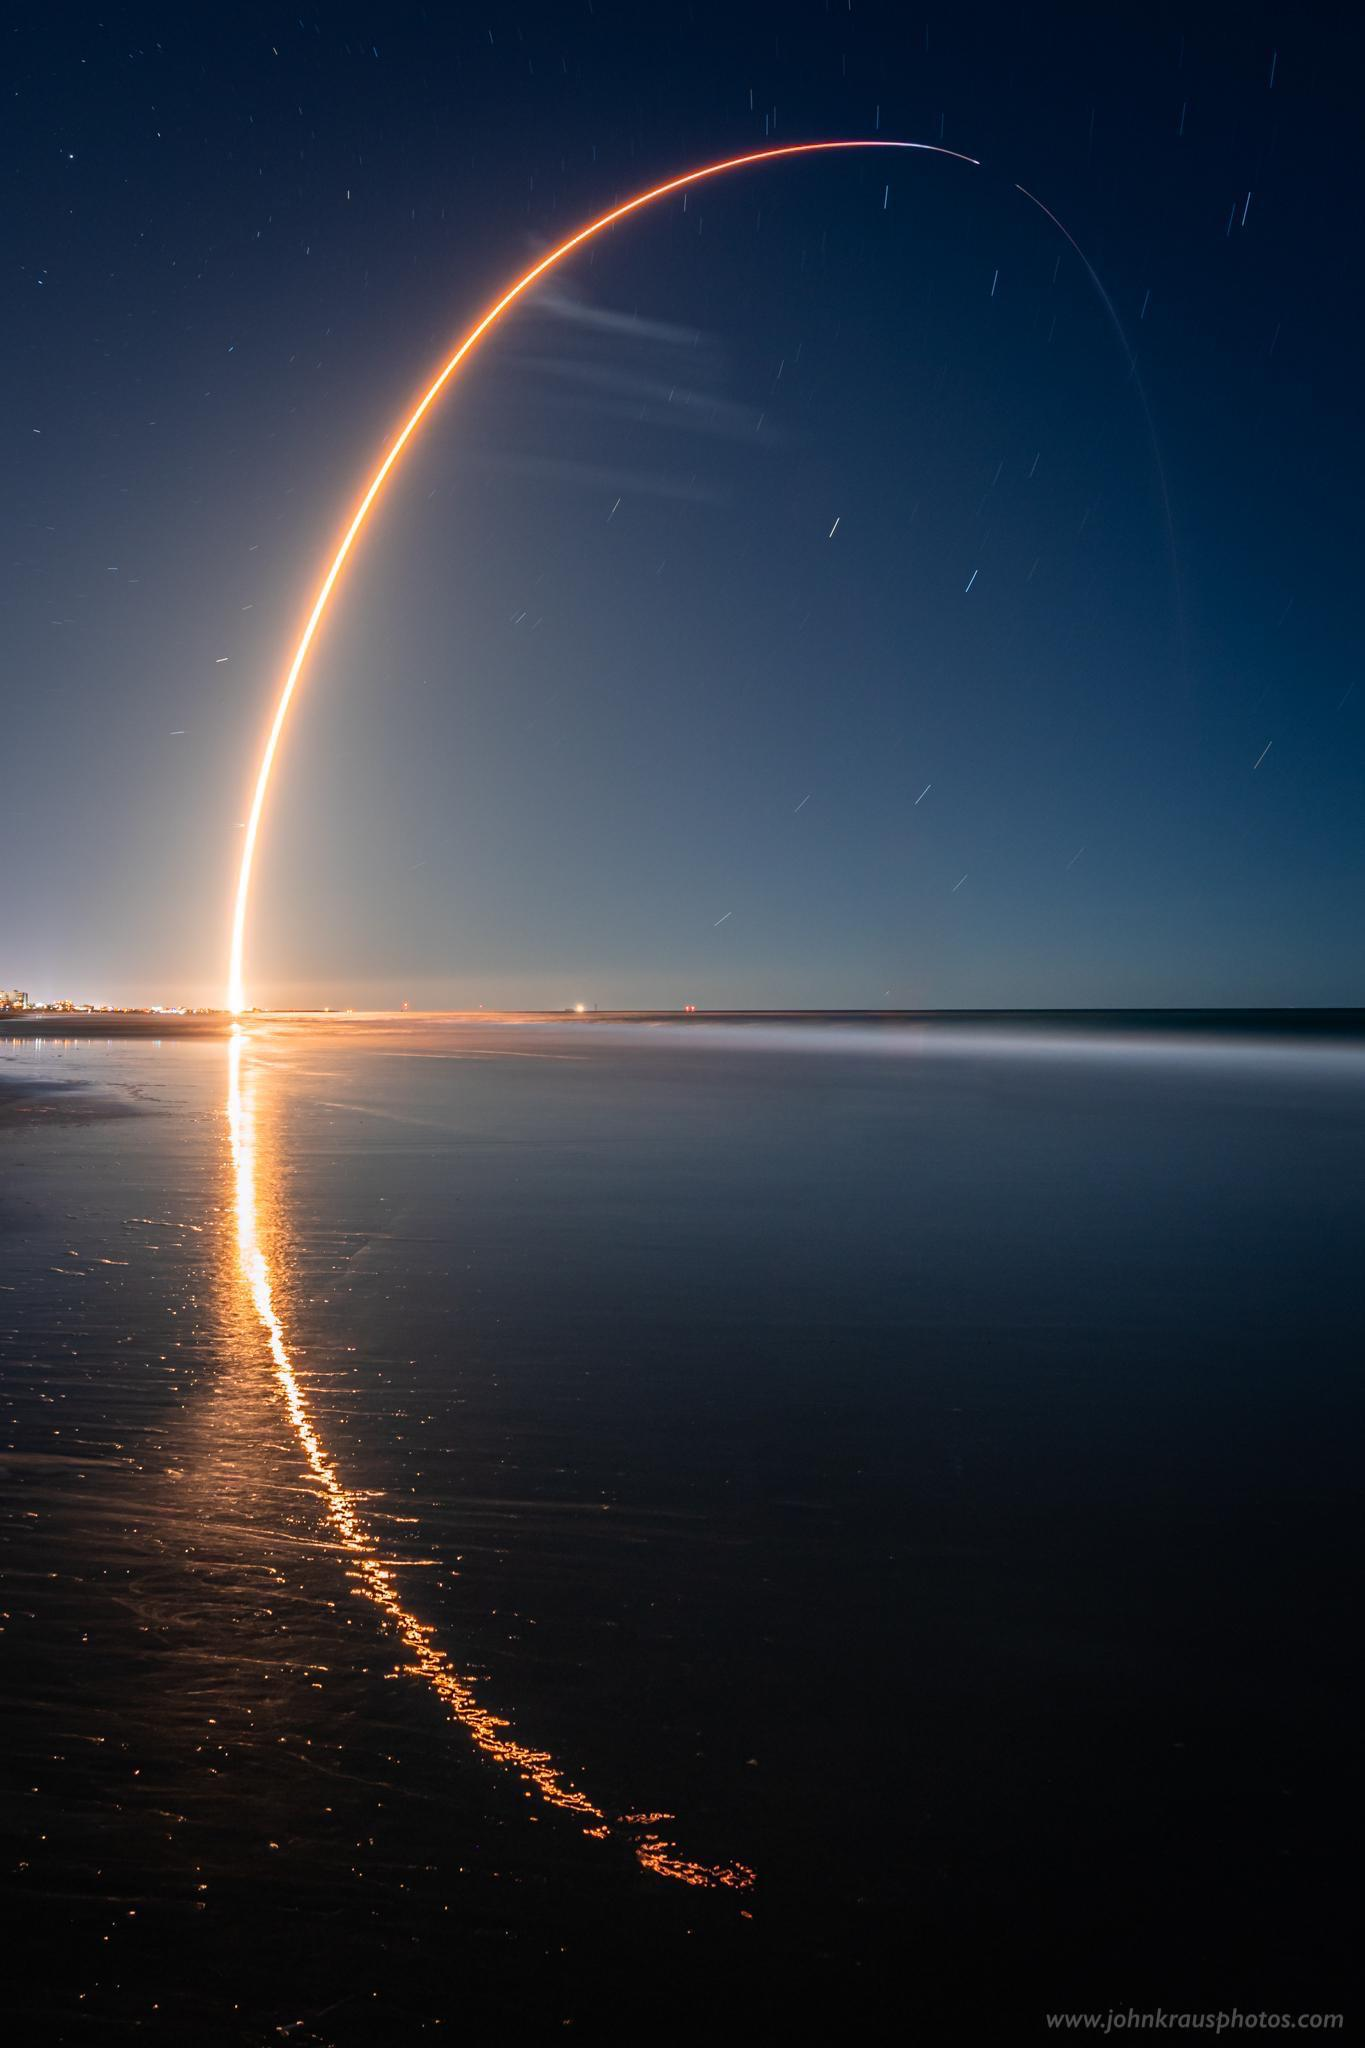 Long exposure photograph I captured of the recent SpaceX Starlink launch and its reflection along the shoreline of the Atlantic Ocean